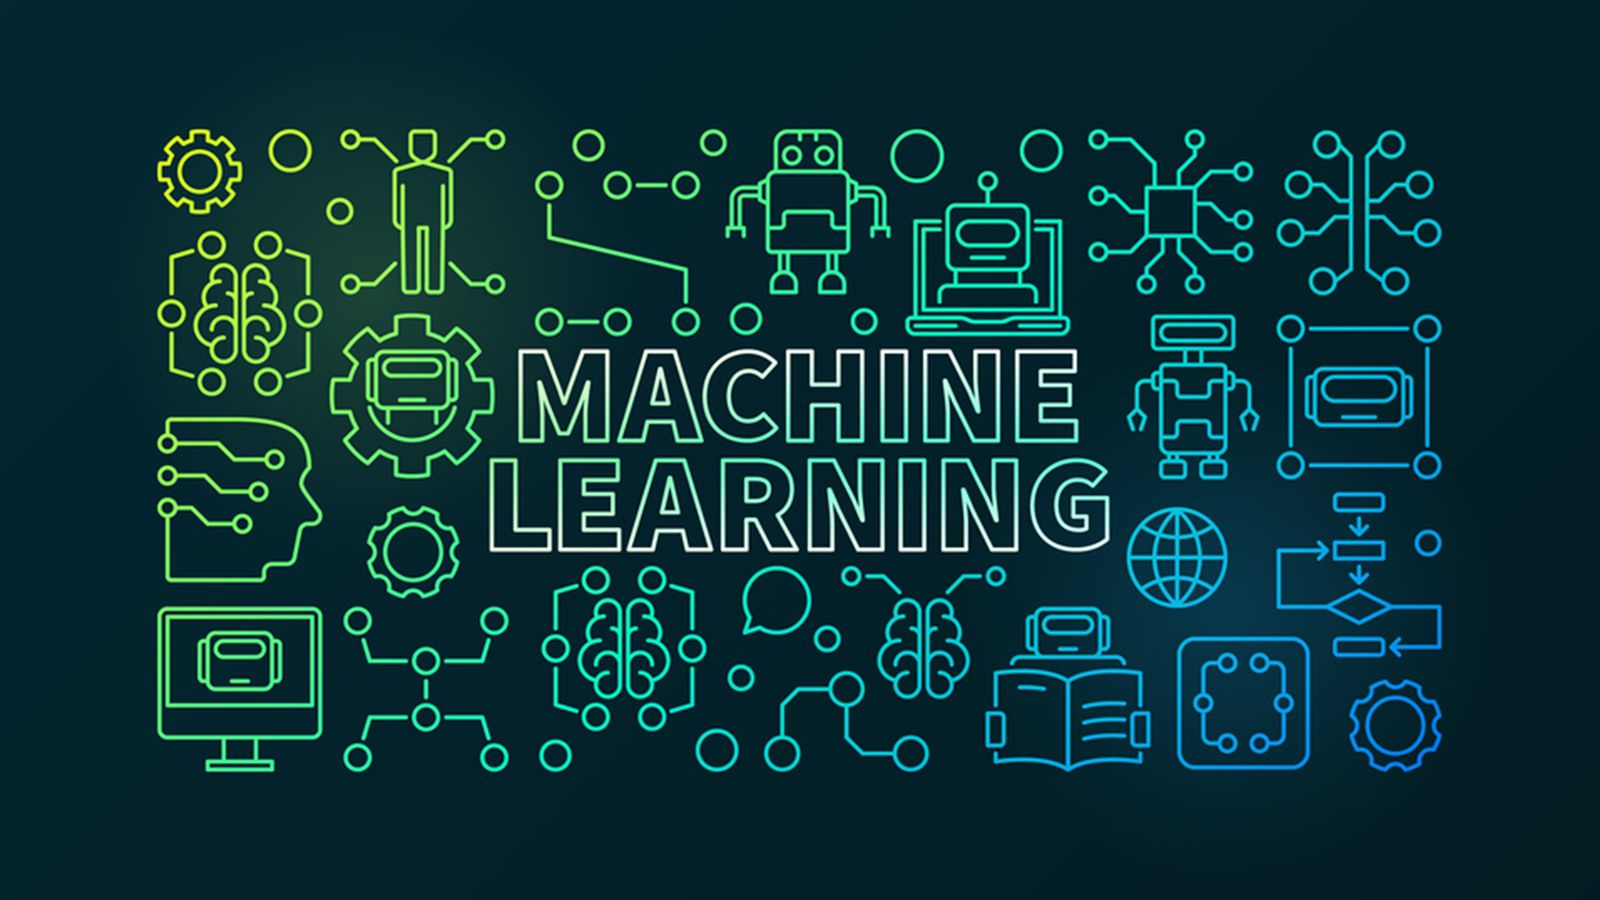 Machine Learning Wallpapers Top Free Machine Learning Backgrounds Wallpaperaccess